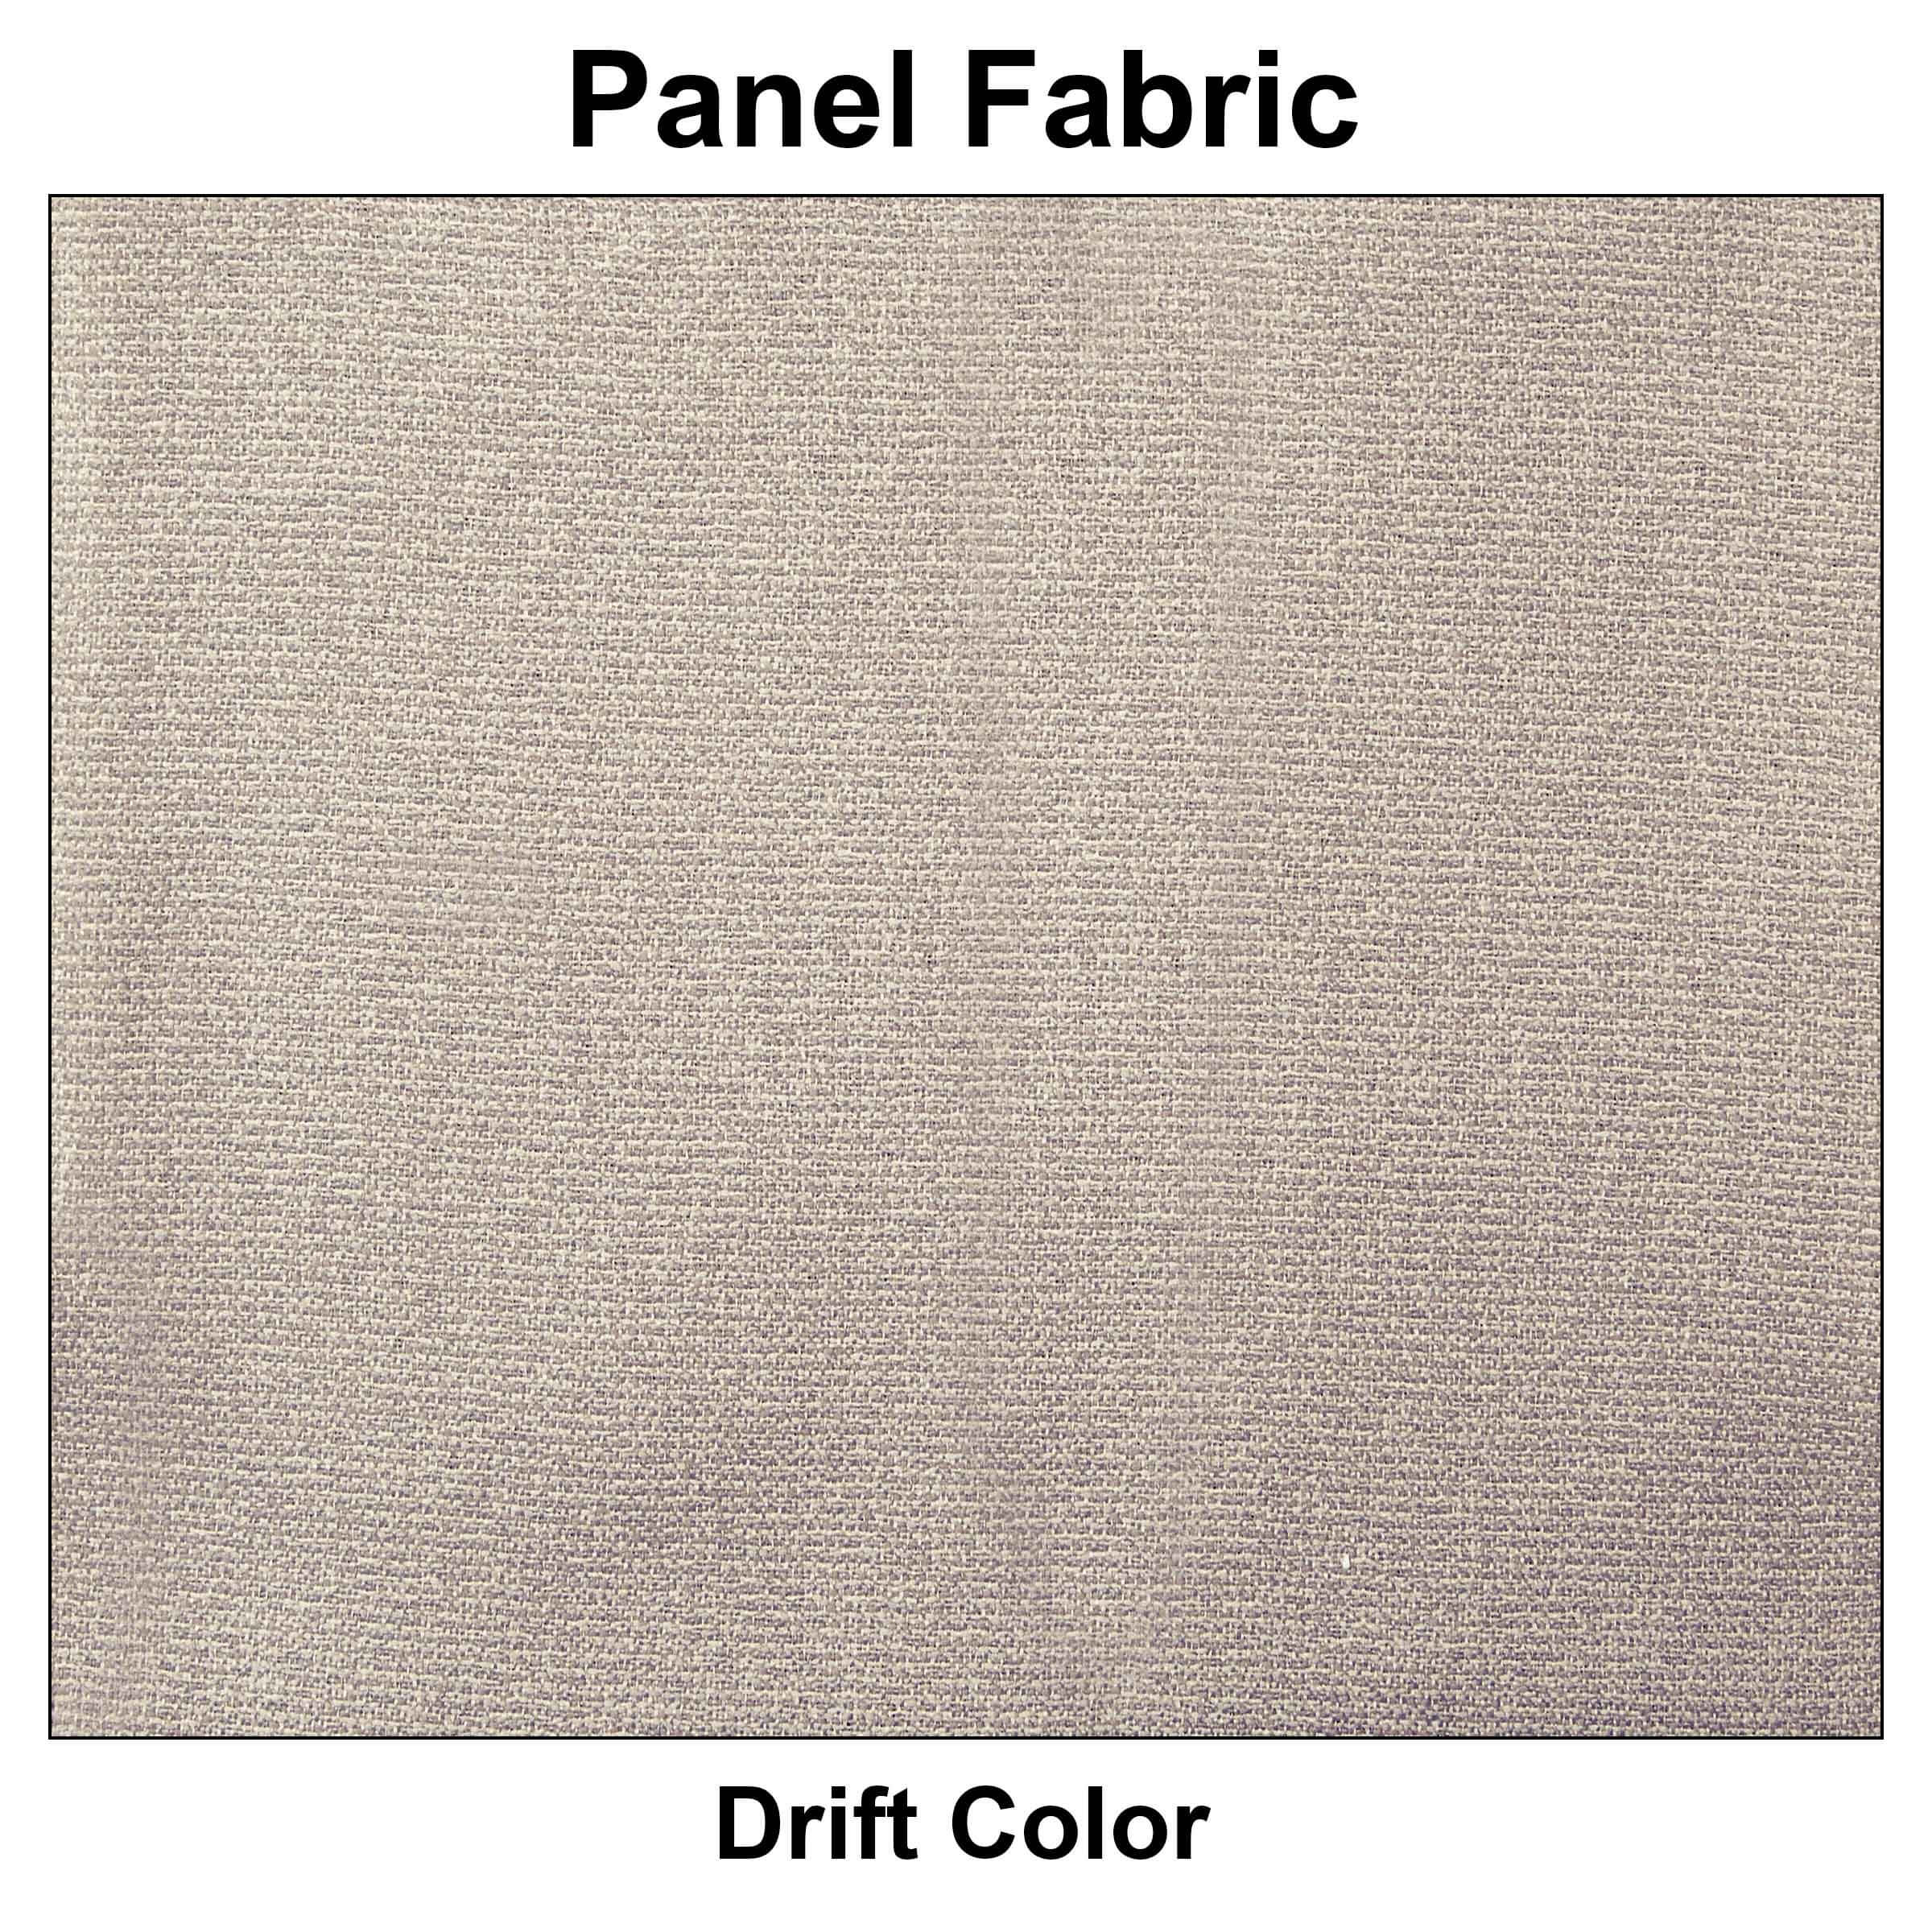 Cubicle workstation single fabric color